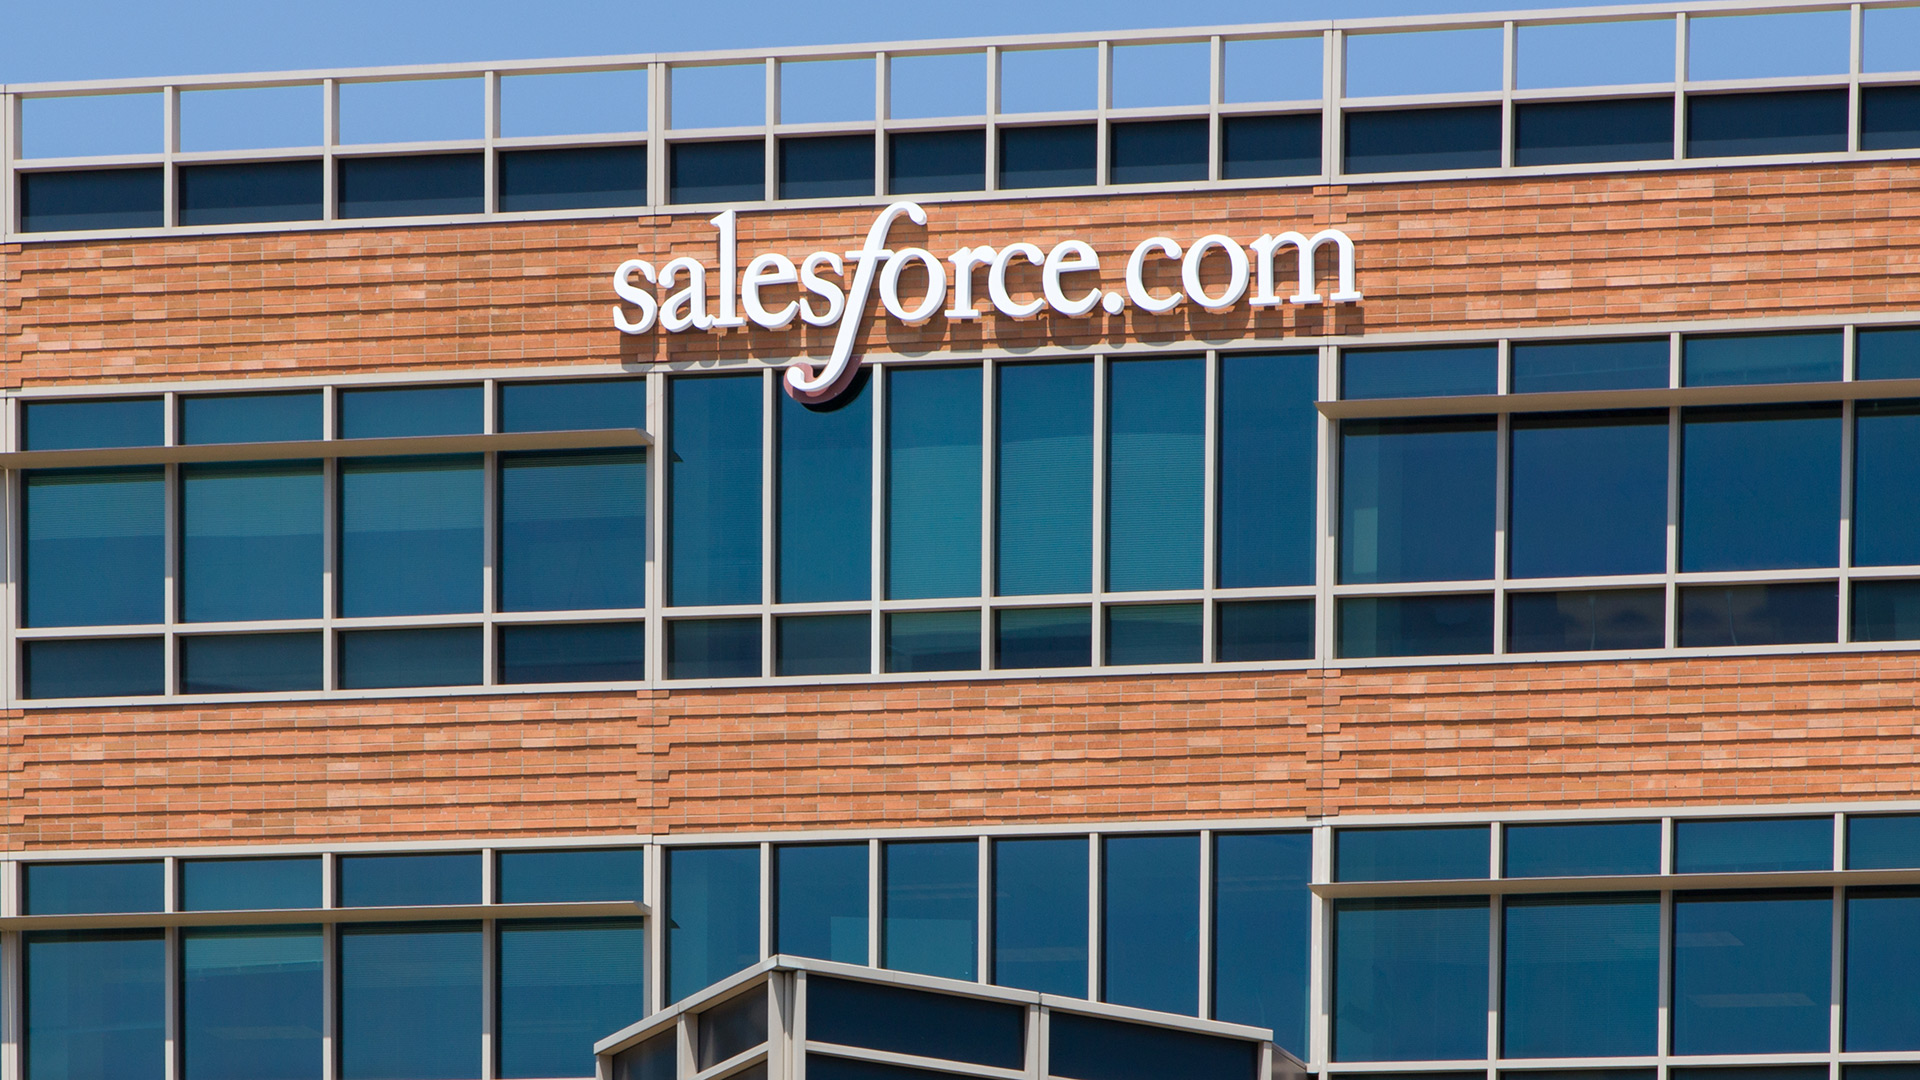 Con Essentials, Salesforce duplica su base de empresas pequeñas